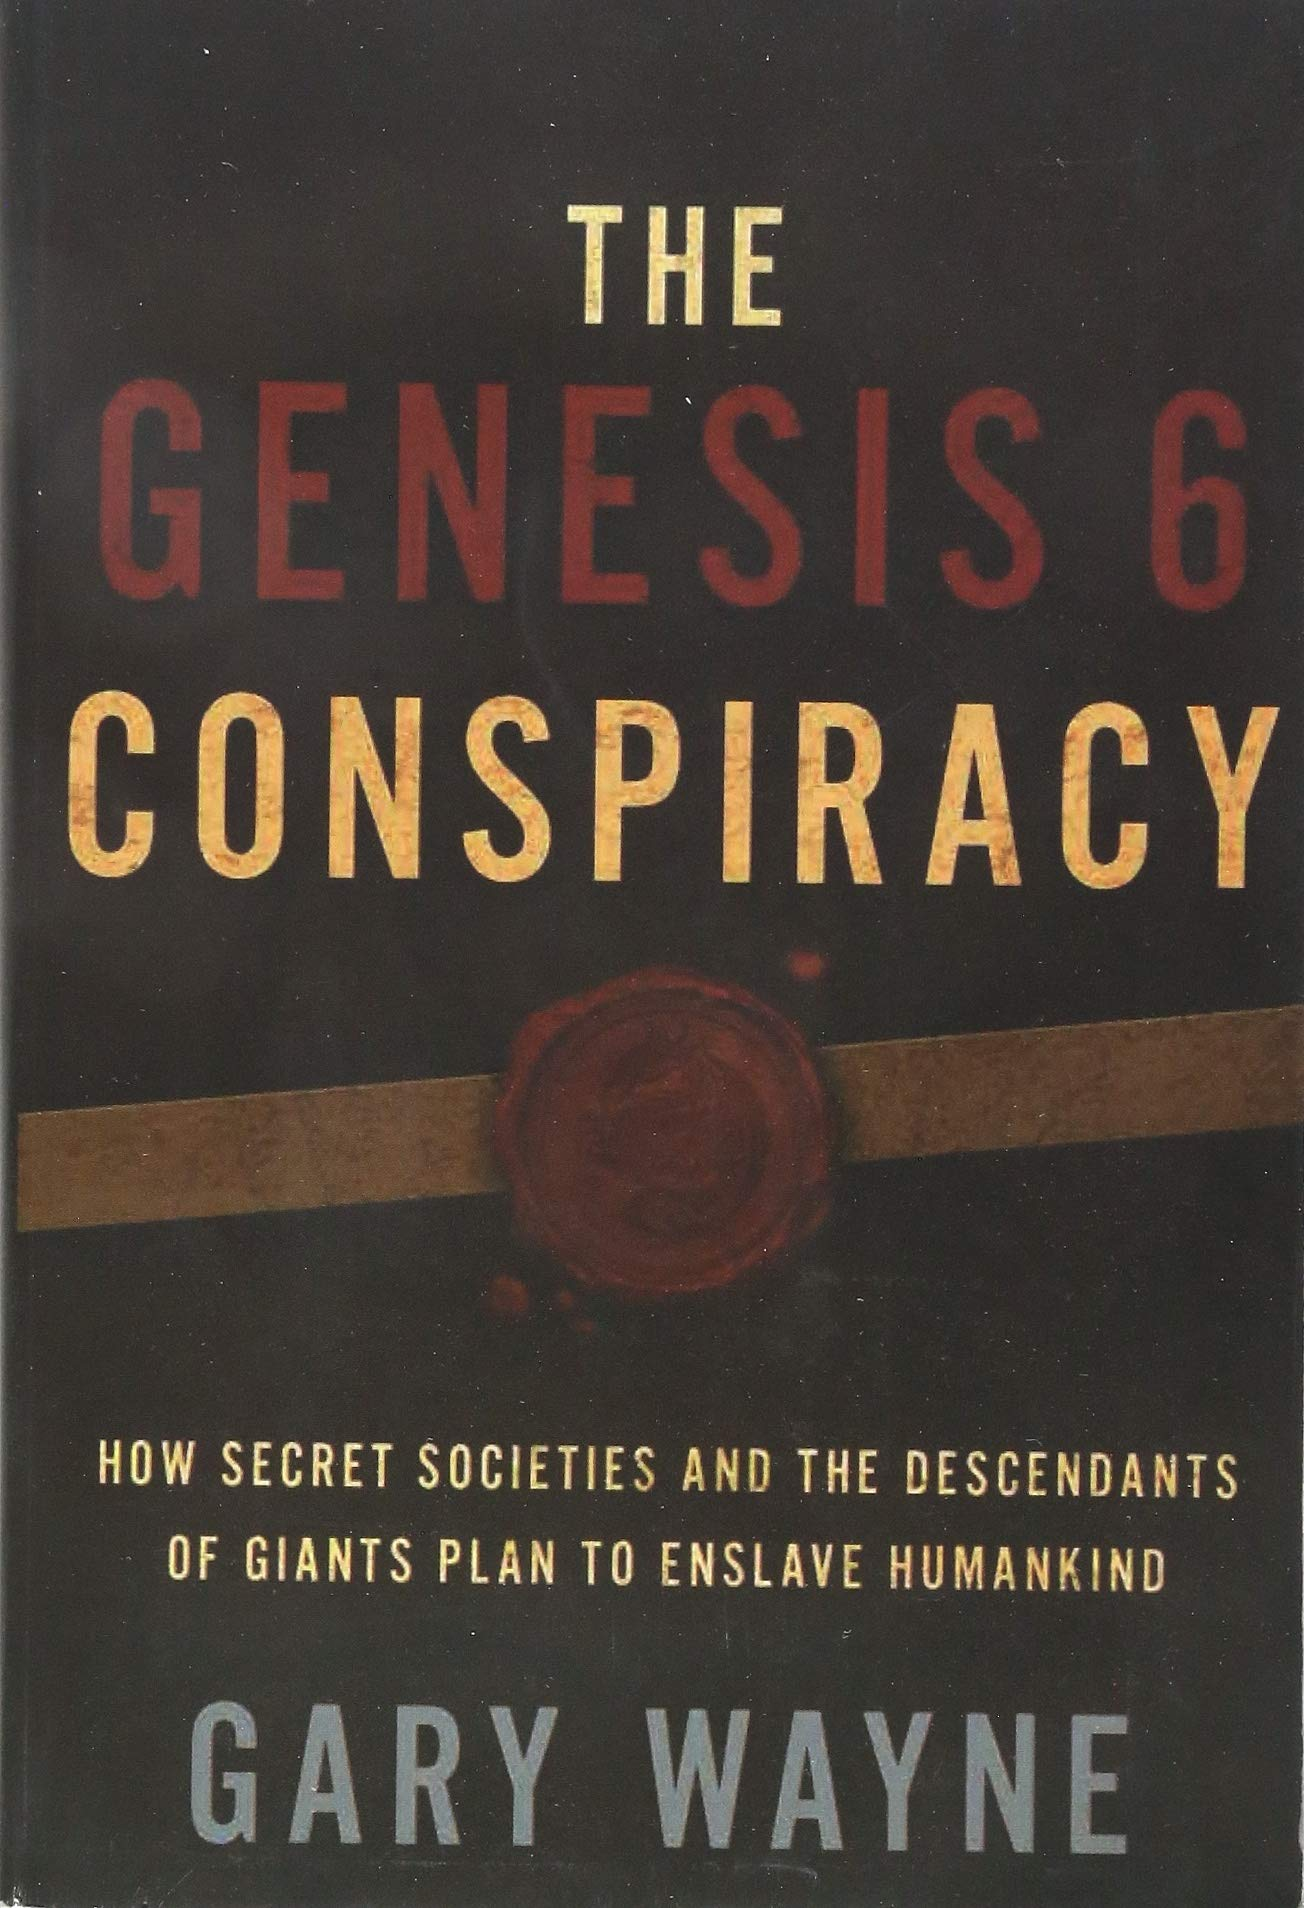 The Genesis 6 Conspiracy: How Secret Societies and the Descendants of Giants Plan to Enslave Humankind by Trusted Books